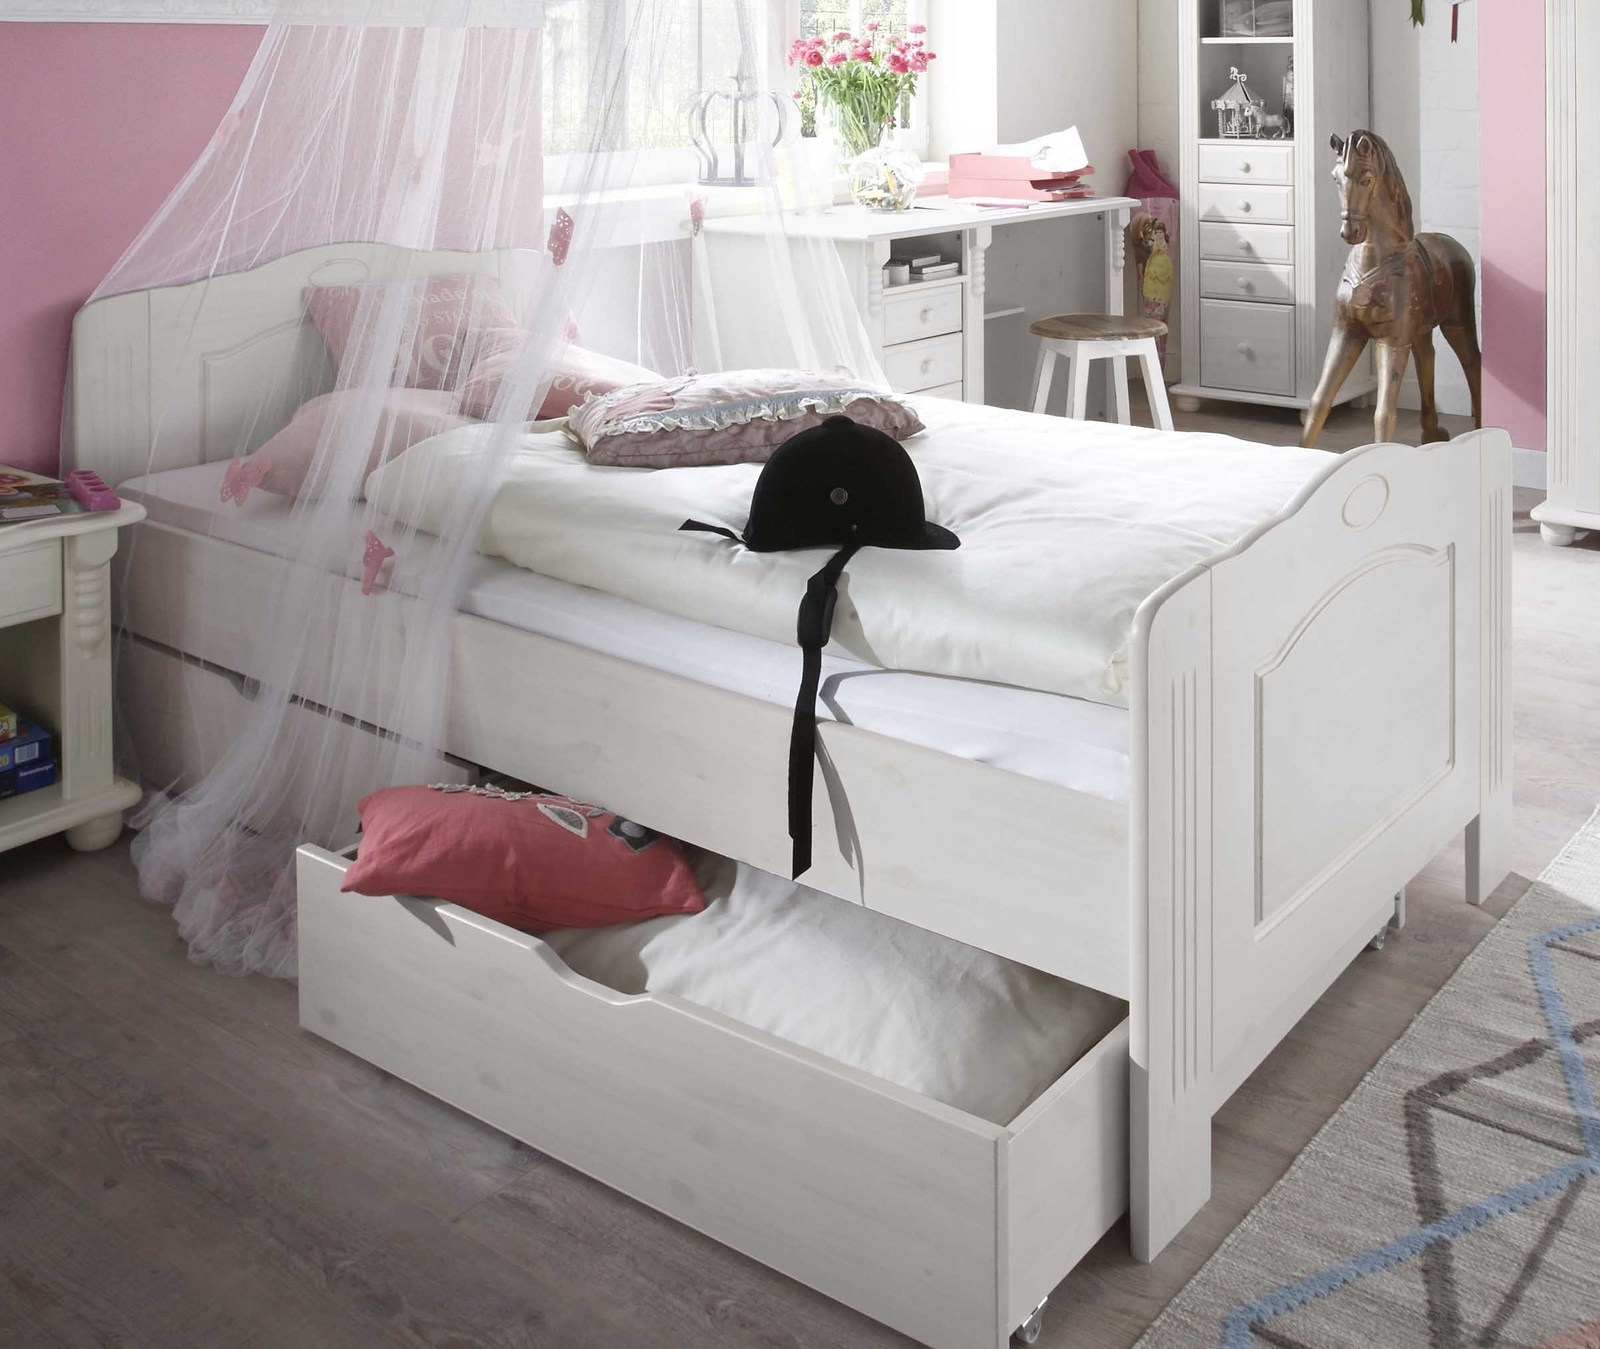 jugendbett im landhausstil 90x200 cm kiefer massiv. Black Bedroom Furniture Sets. Home Design Ideas